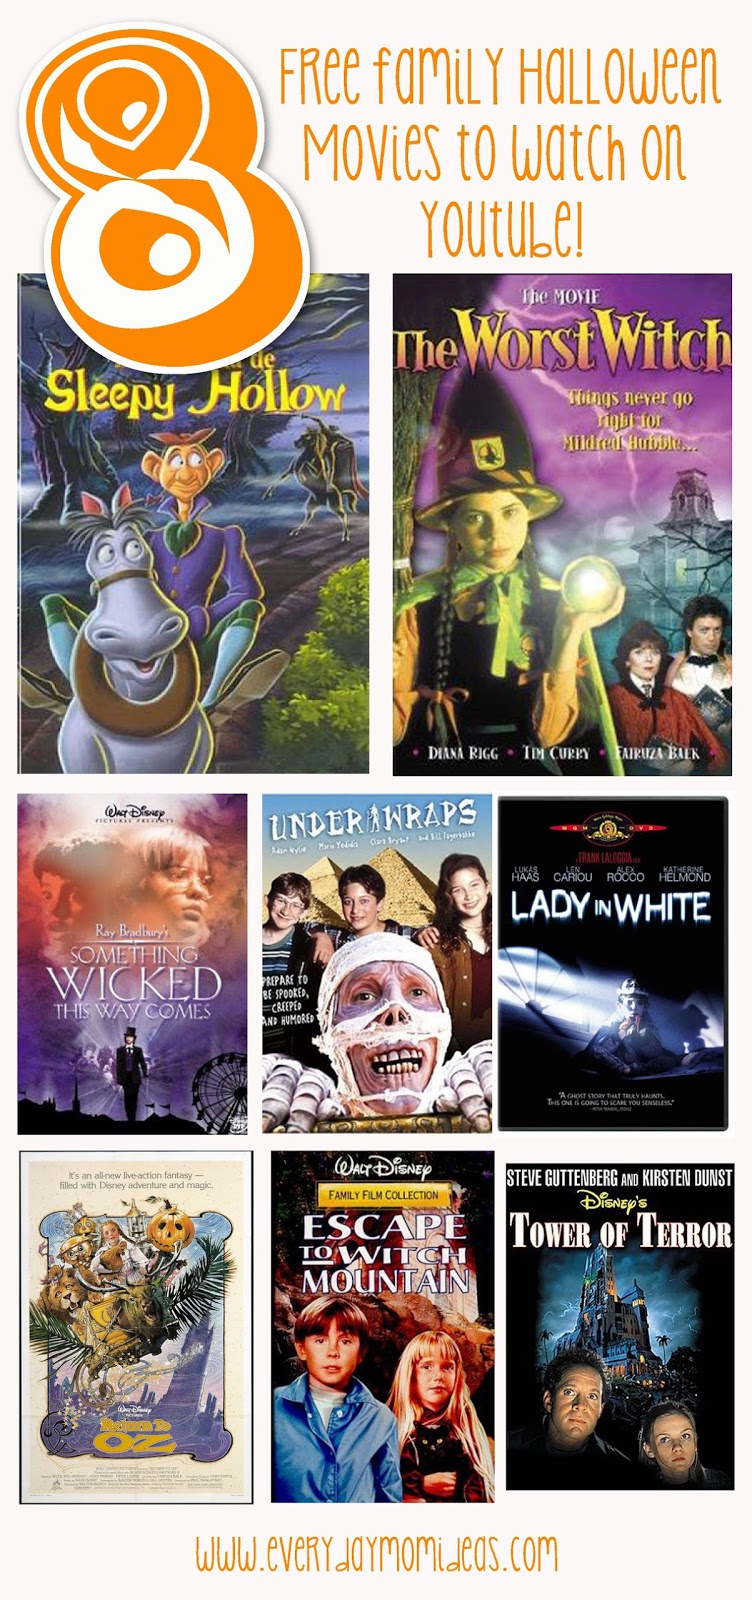 8 free family halloween movies you can watch on youtube